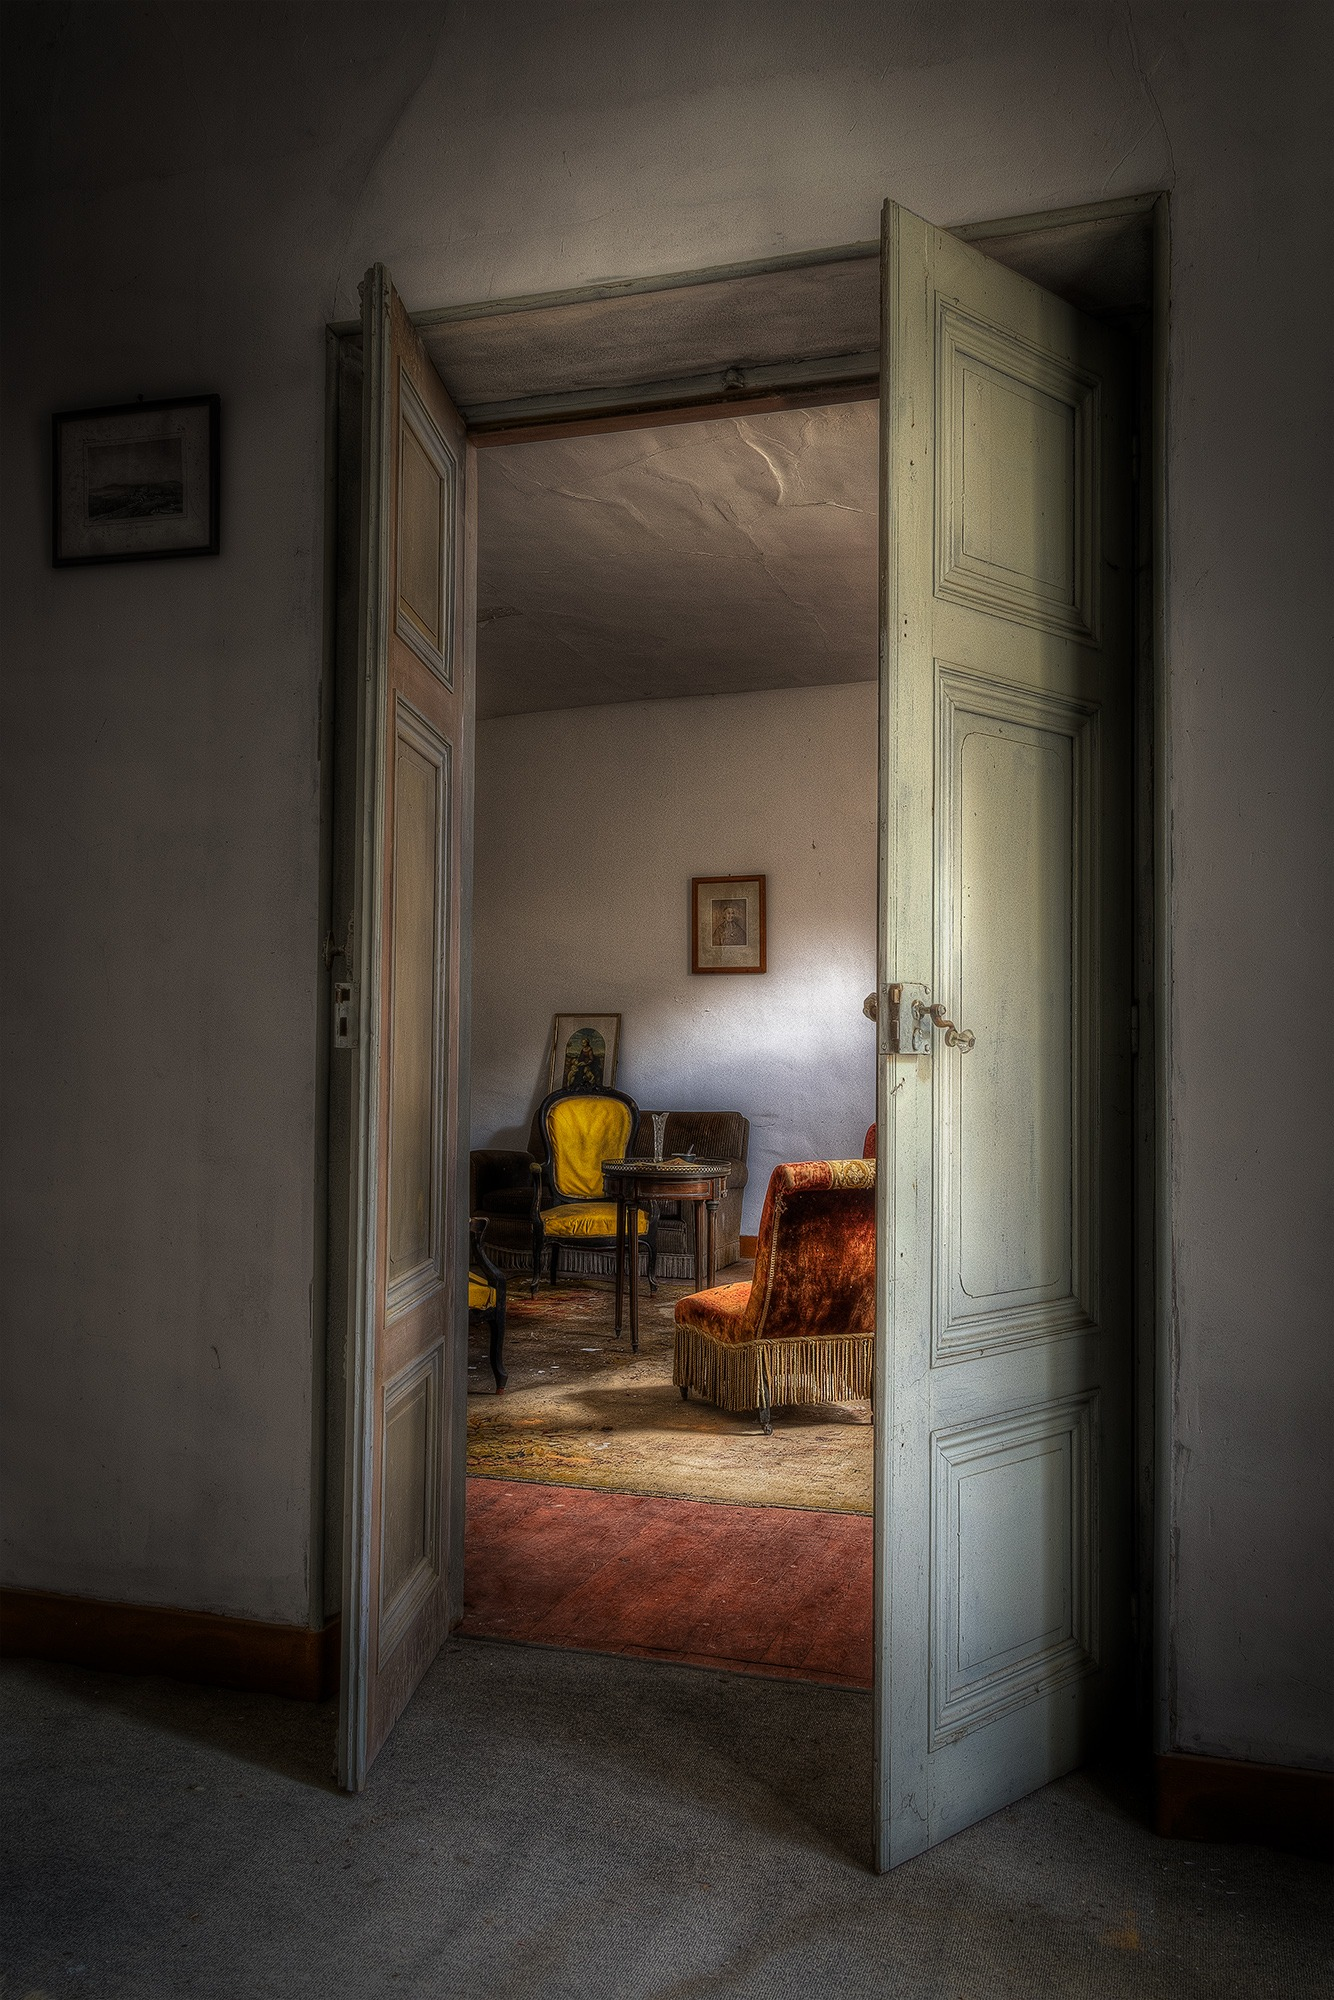 Salon d'un manoir à l'abandon, France